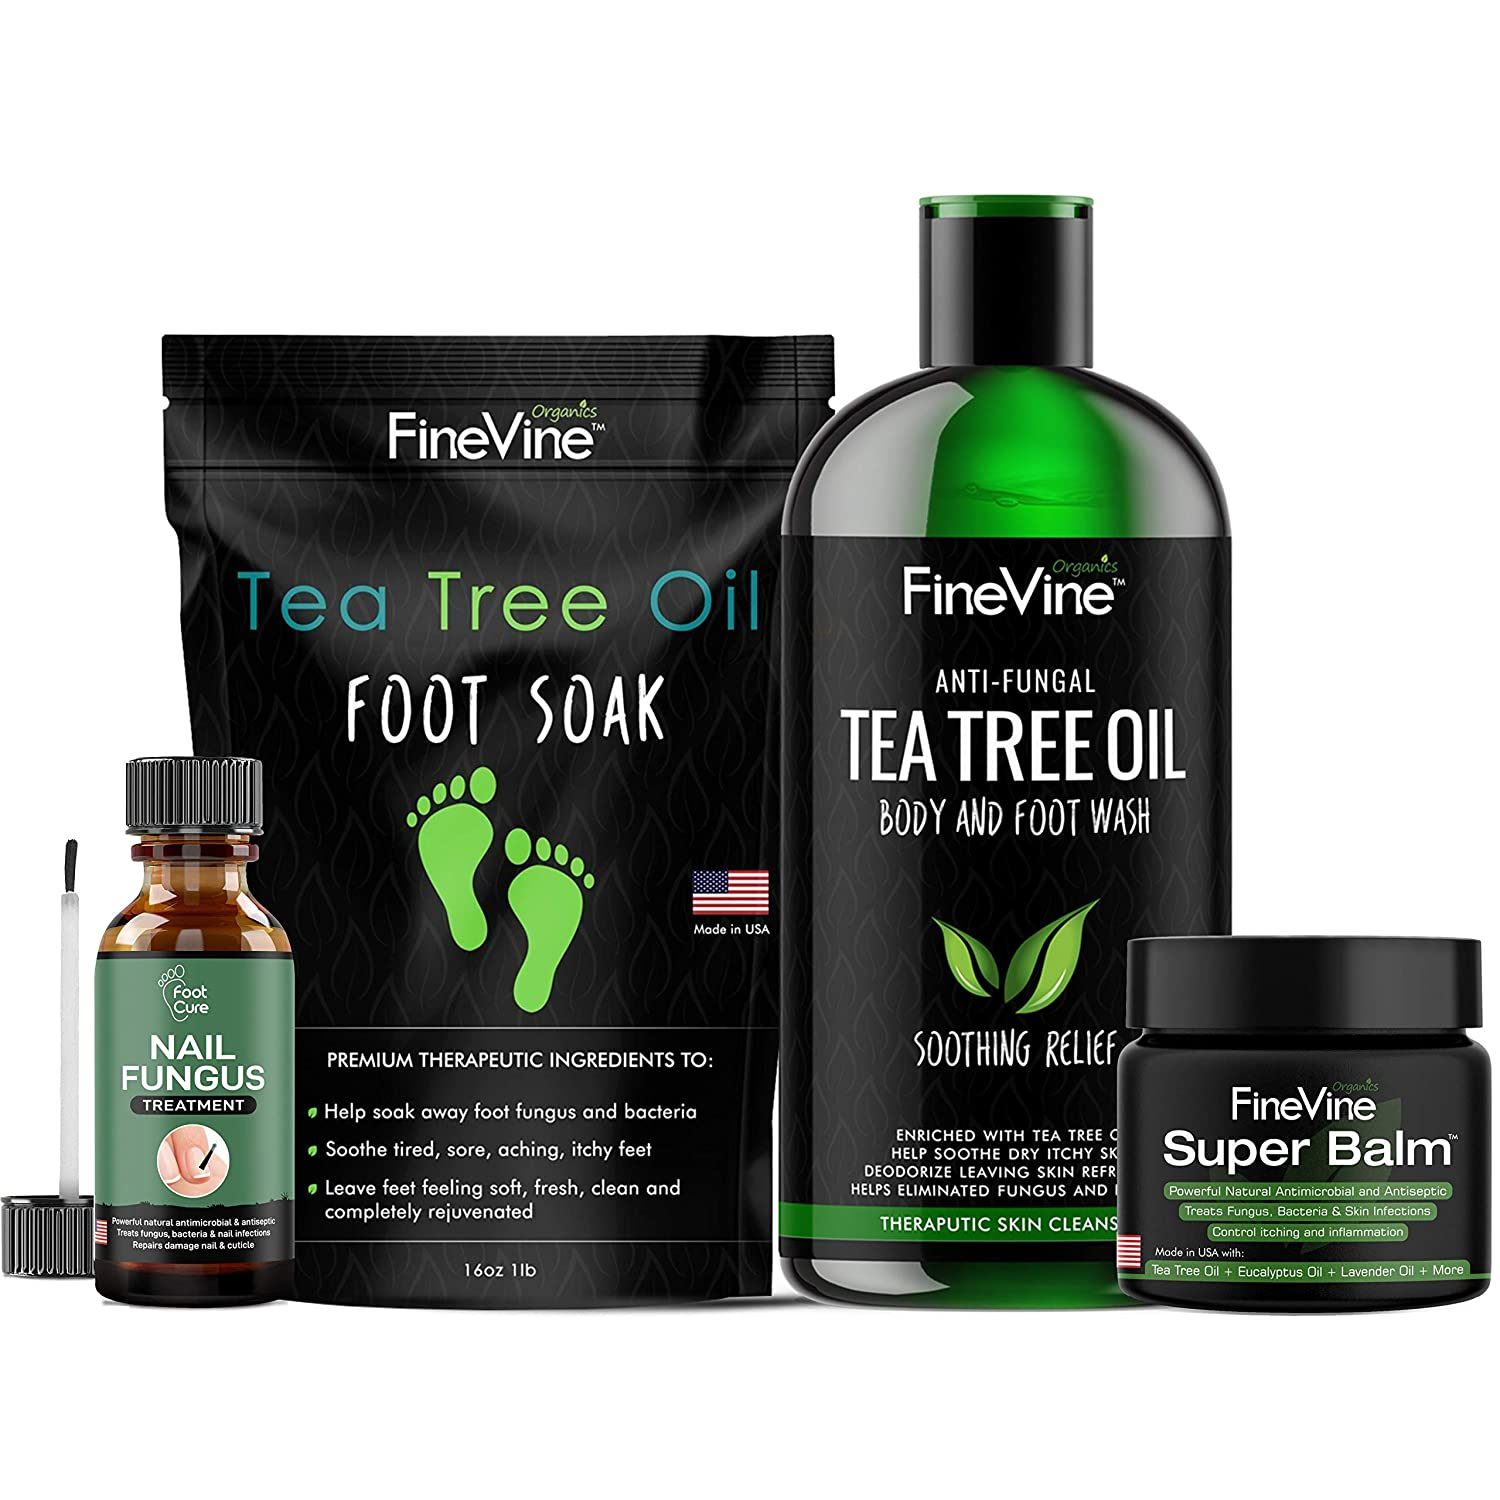 4 IN 1 FOOT CARE Treatment Kit, Made in USA, Includes Tea Tree Body Wash, Tea Tree Oil Foot Soak, Anti-Fungal Skin Balm and Toenail Fungus Remover – Get Rid of Bad Odor, Fungi and Athletes Foot.